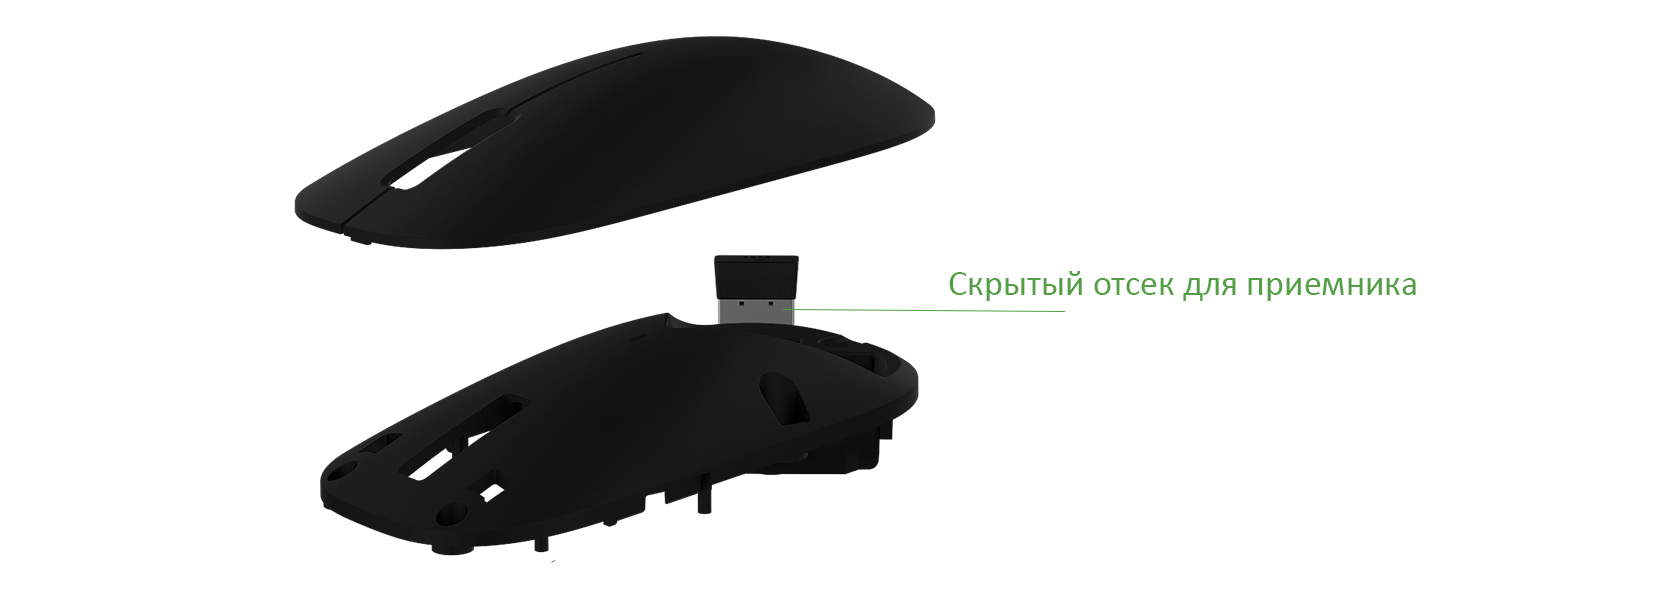 Мышь Xiaomi Mi Mouse 2 Black (WSB01TM_B)